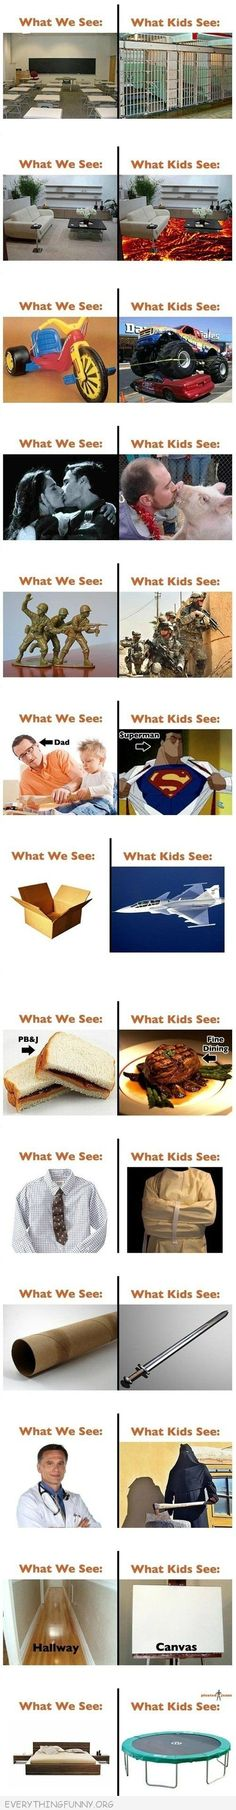 funny what we see vs what kids see